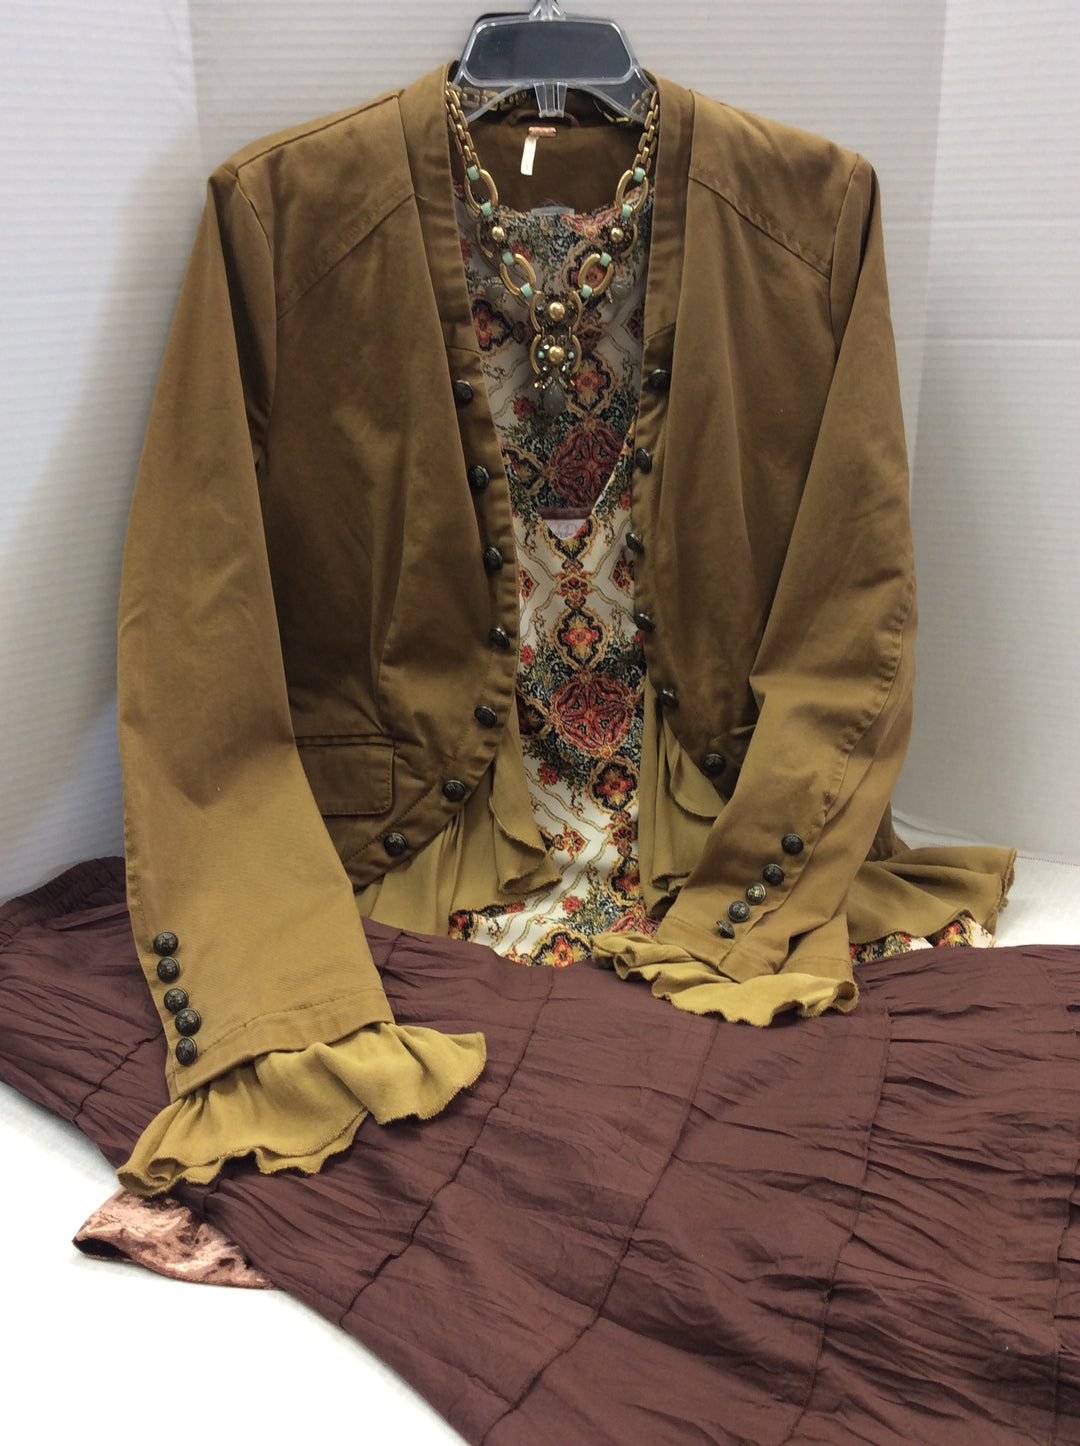 Photo #4 - BRAND: MULTIPLES <BR>STYLE: SKIRT <BR>COLOR: BROWN <BR>SIZE: L <BR>SKU: 133-13374-1621<BR>BEAUTIFUL FULL RUSTY BROWN SKIRT. LOOKS GREAT WITH BOOTS! SEE IT STYLED IN LAST PHOTOS ( ITEMS IN THE STYLES PHOTS ARE SOLD SEPARATELY AND ARE NOT INCLUDED IN THE SALE OF THE SKIRT)